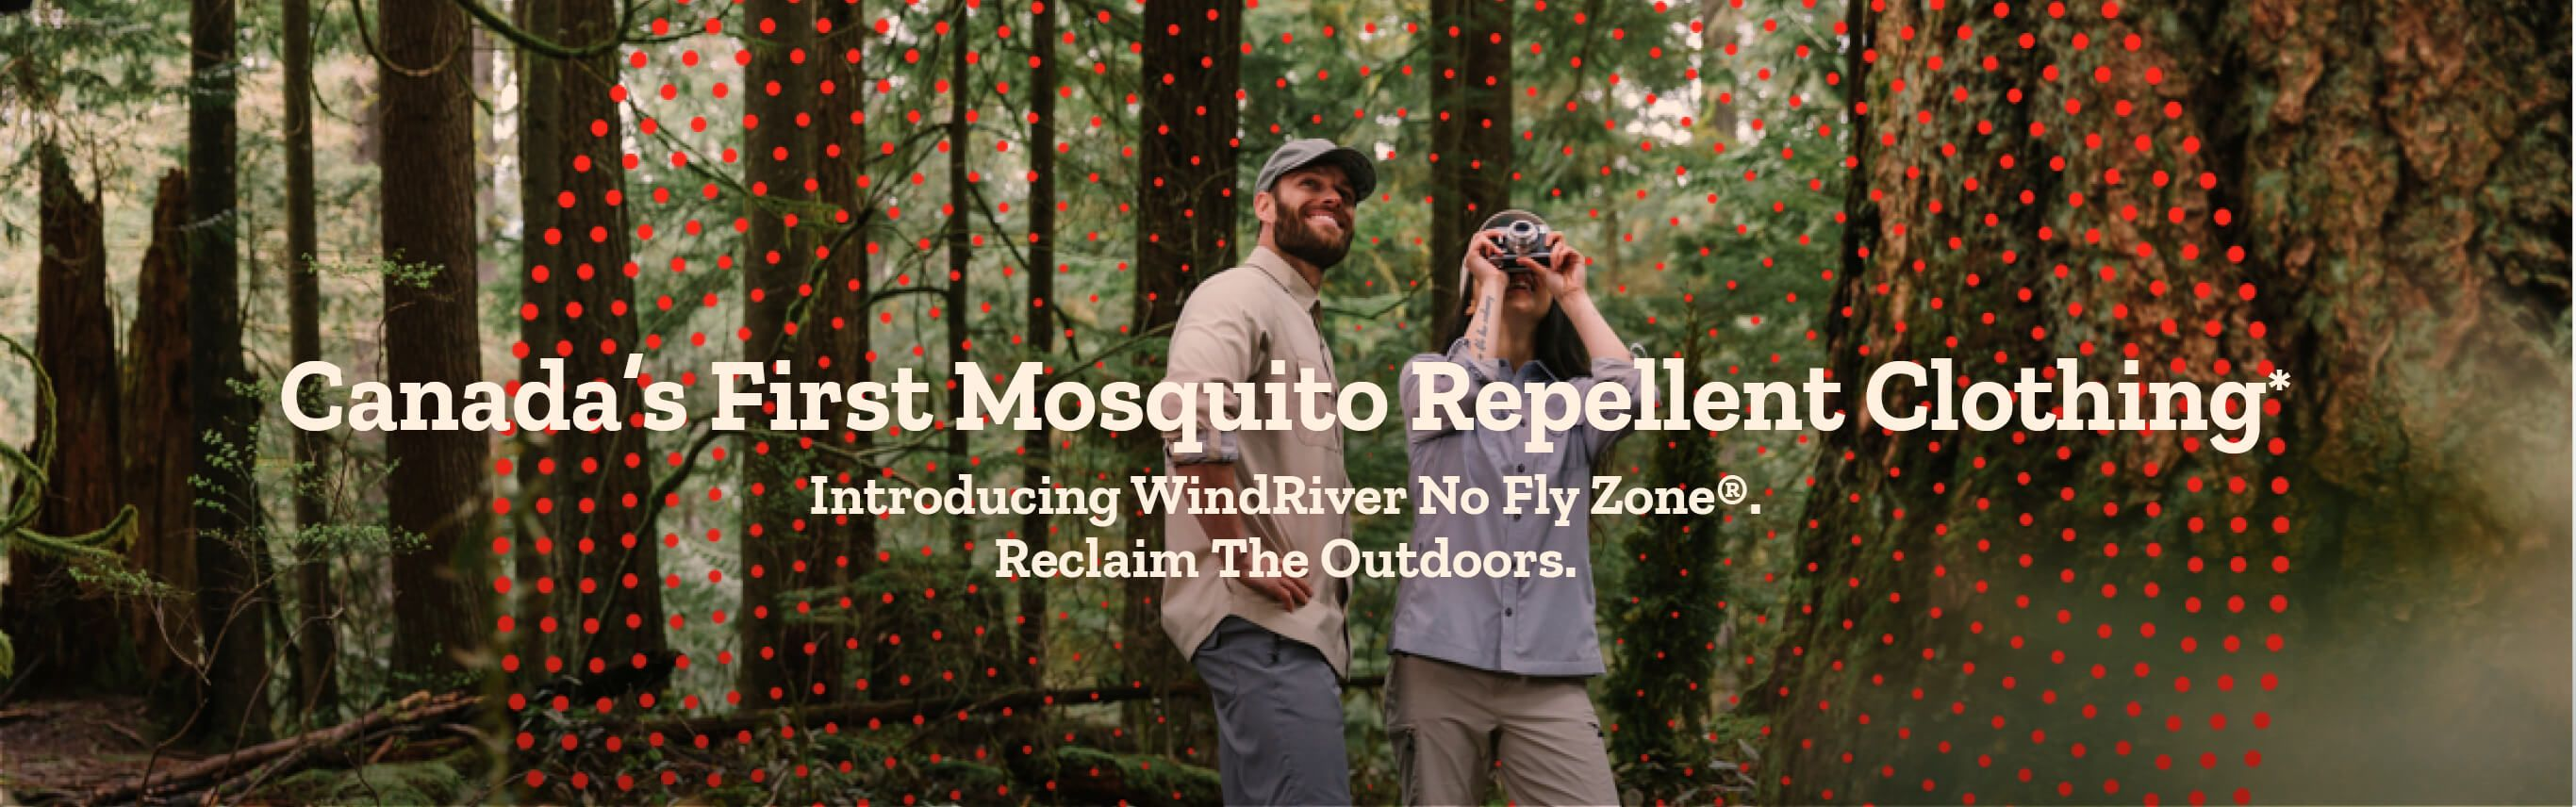 Canada's First Mosquito Repellant Clothing. Introducing WindRiver No Fly Zone. Reclaim the Outdoors.